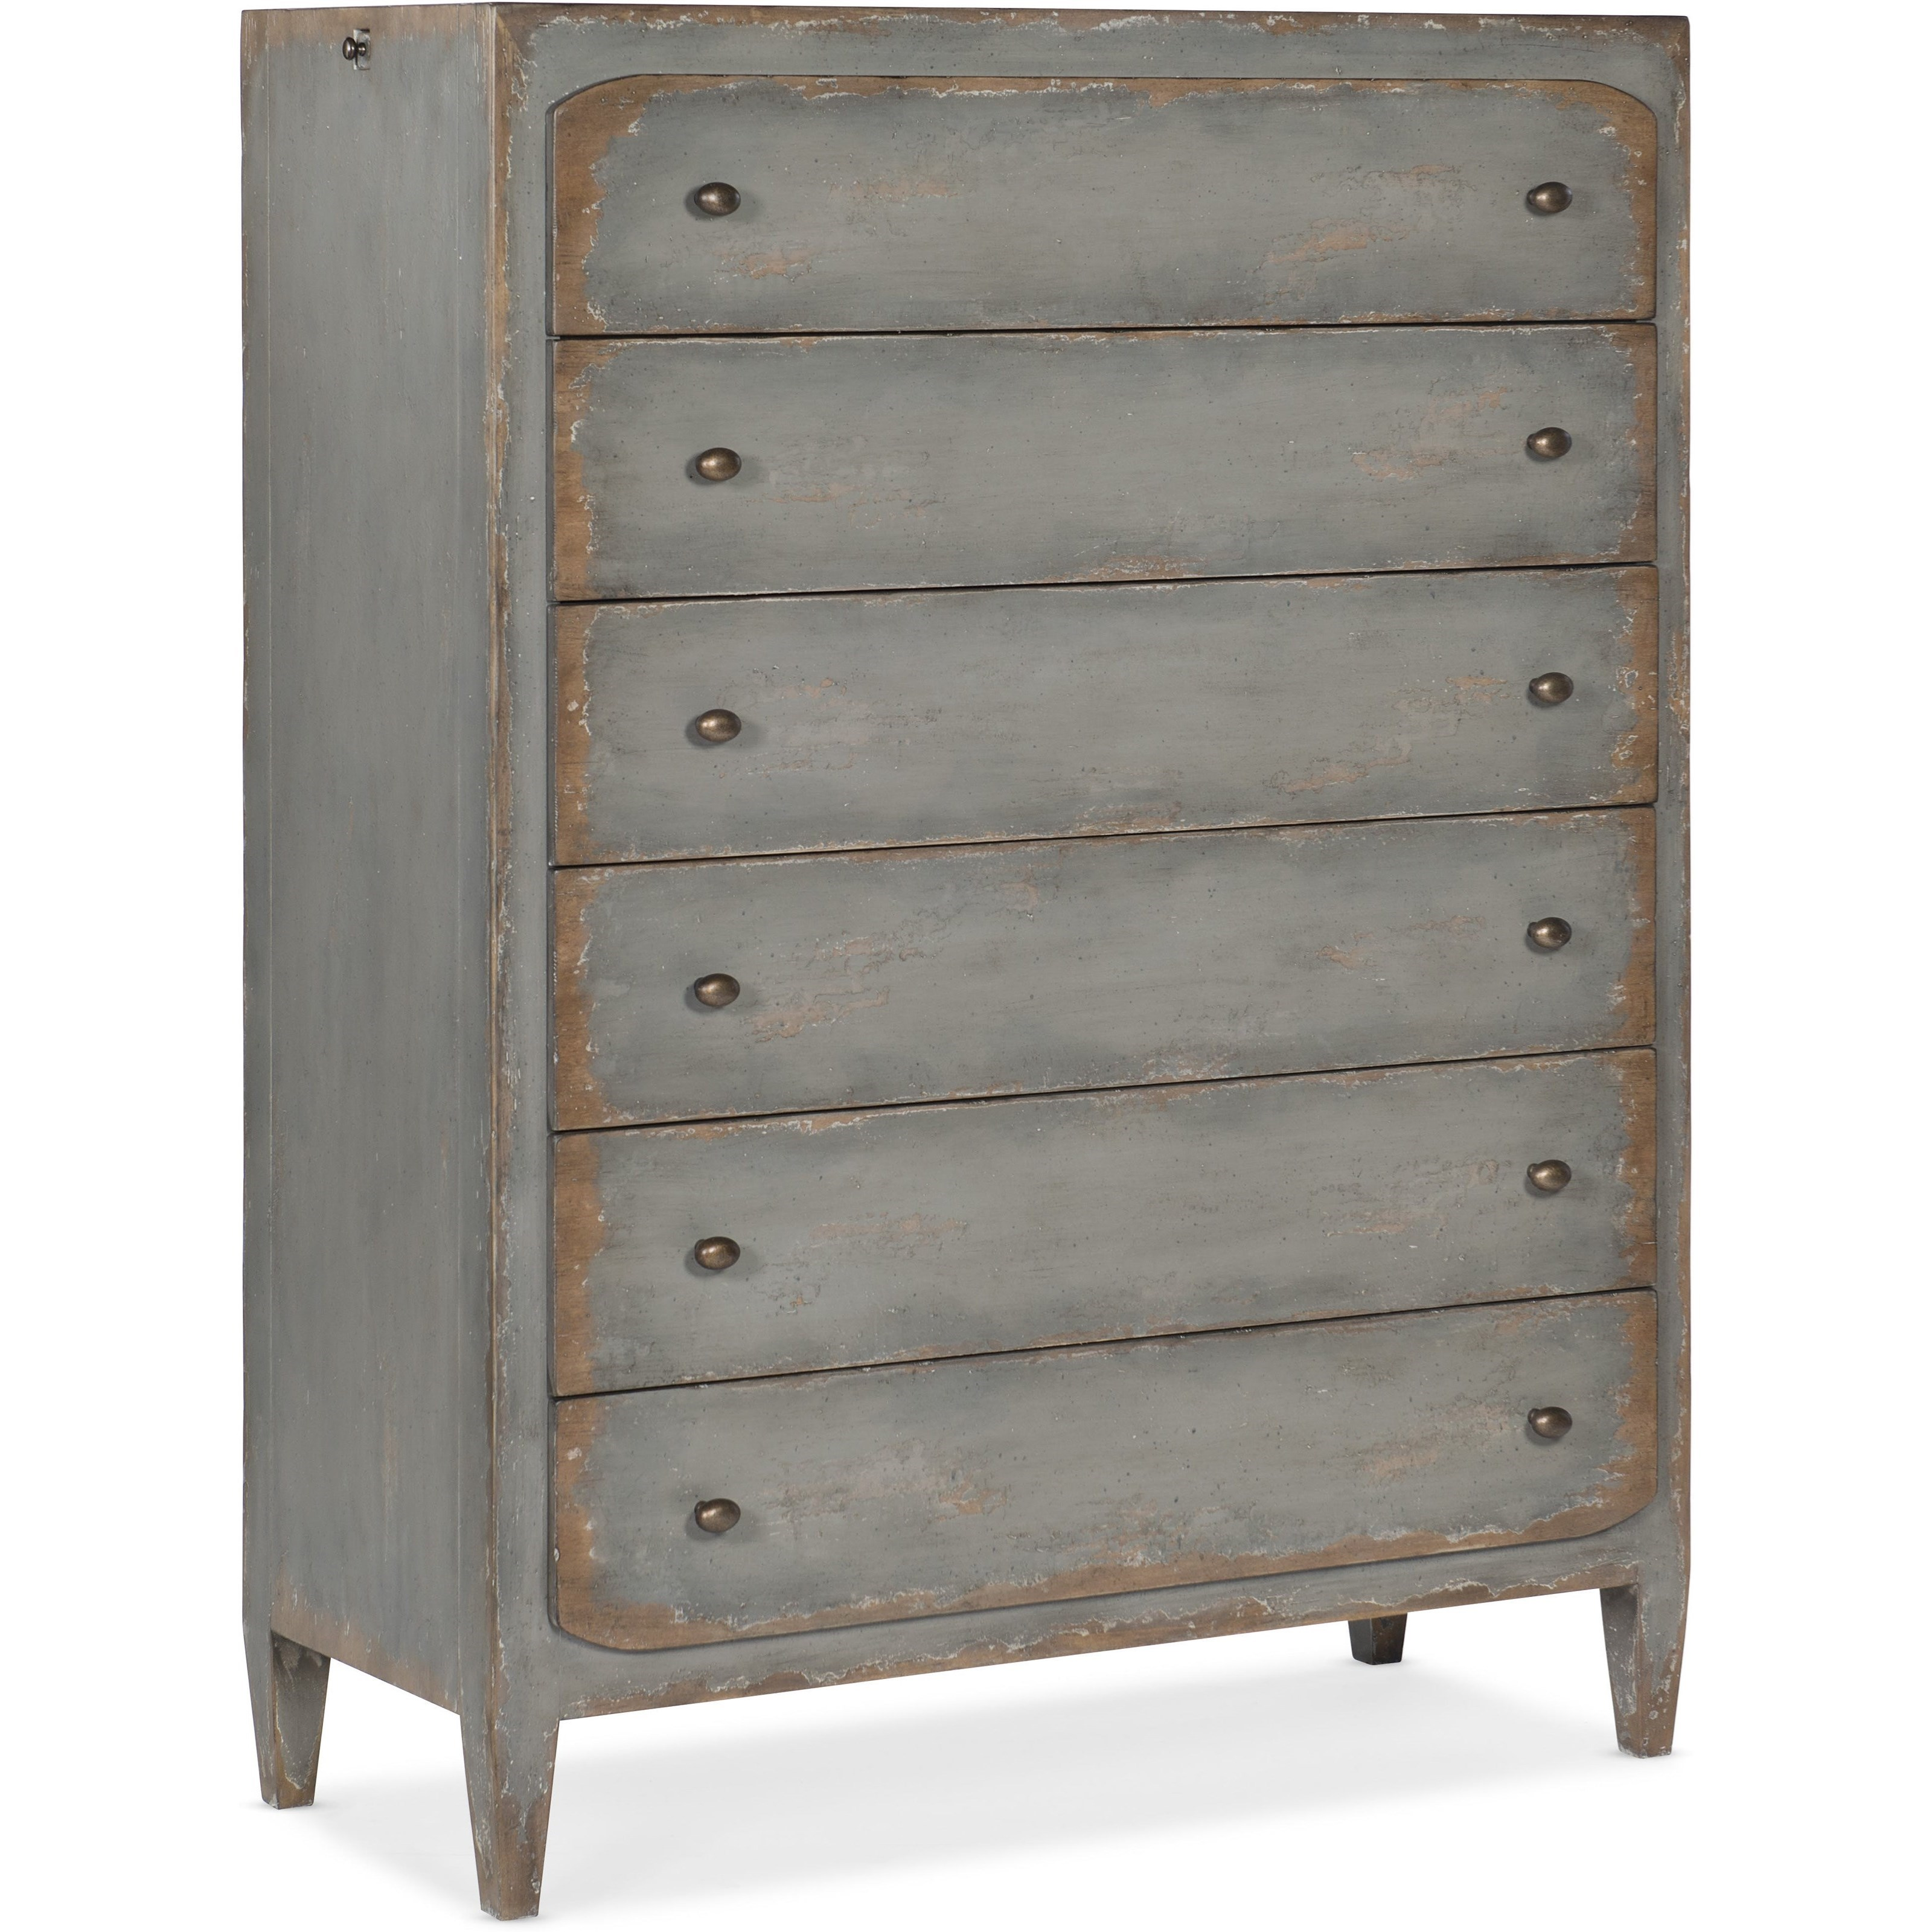 Ciao Bella 6-Drawer Chest by Hooker Furniture at Baer's Furniture